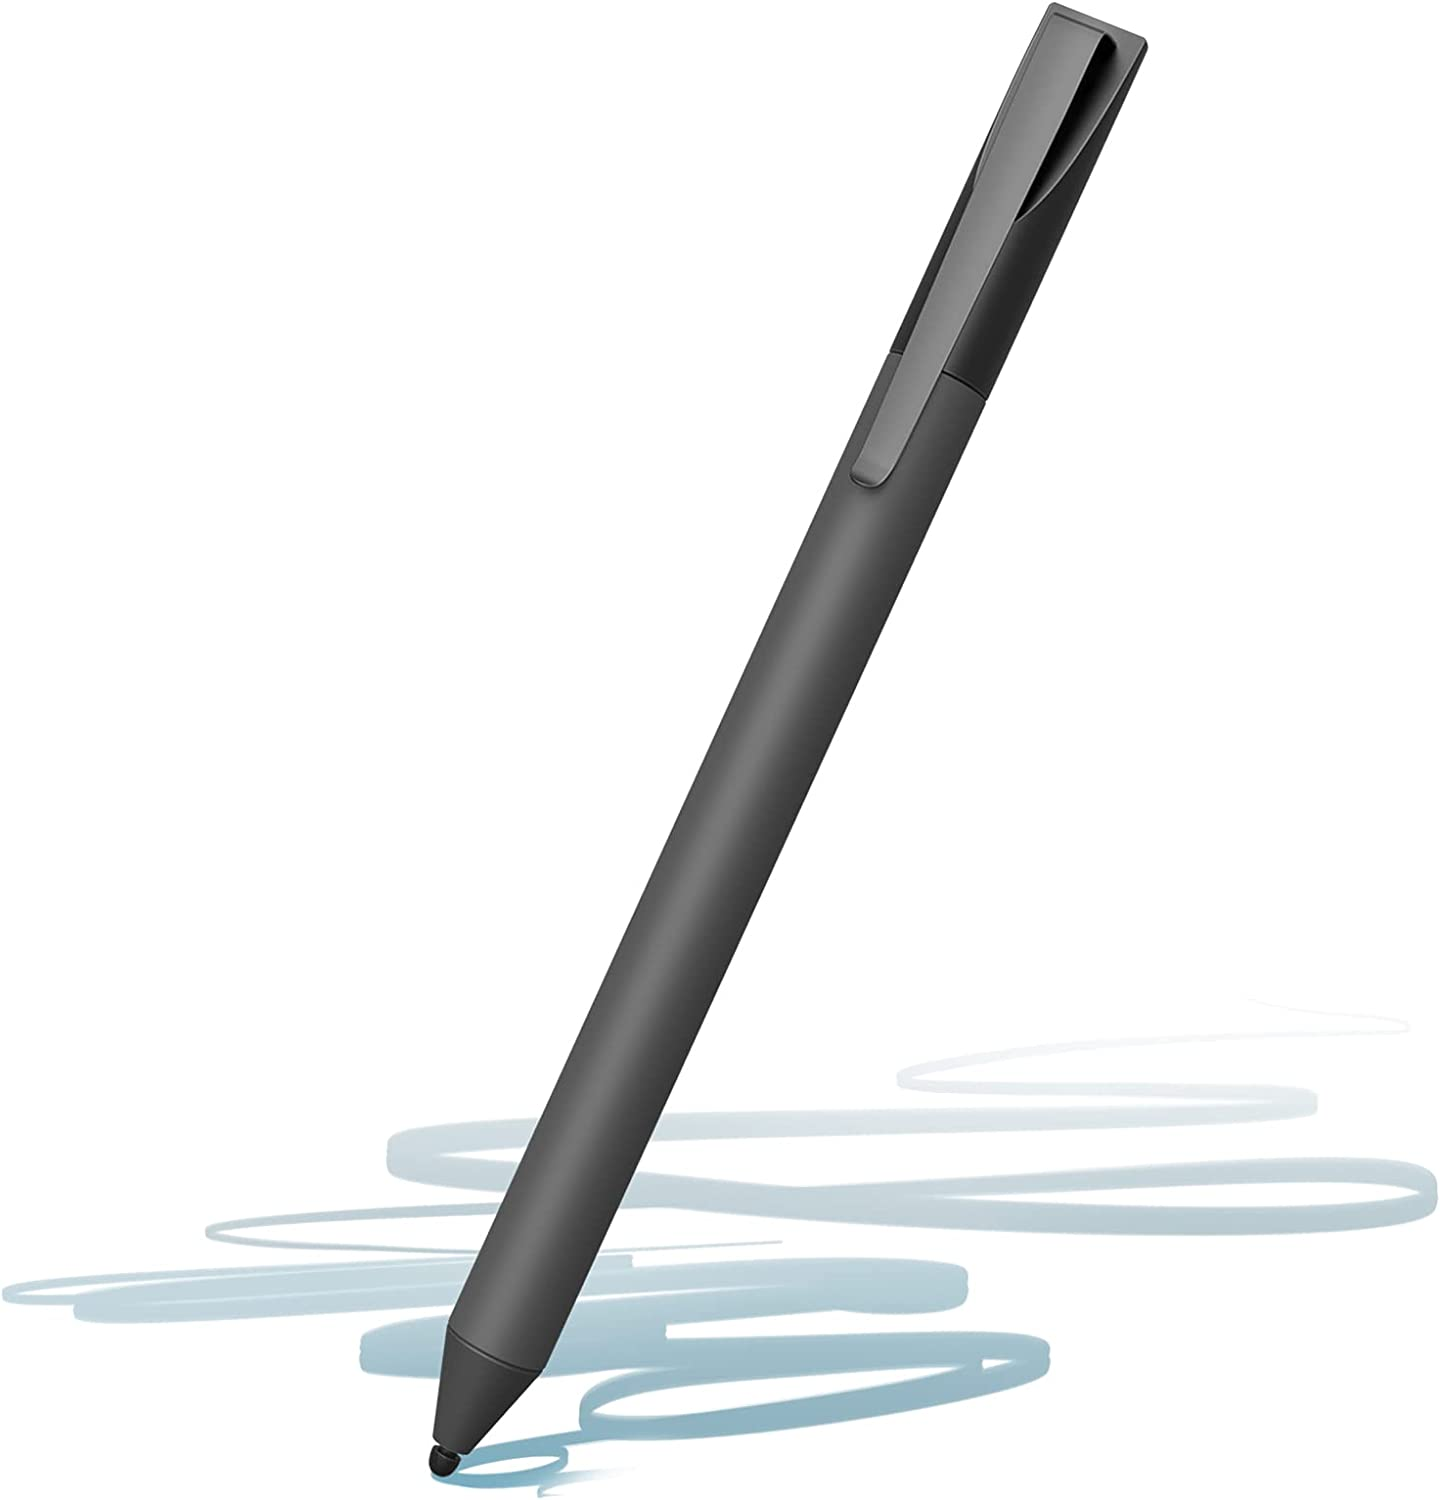 ?ANYQOO USI Stylus Pen for Chromebook with 4096 Levels Pressure for Len-OVO Chromebook, HP Chromebook X360, ASUS Chromebook Flip, and Acer Chromebook Series, Including AAAA Battery & Spare Tip